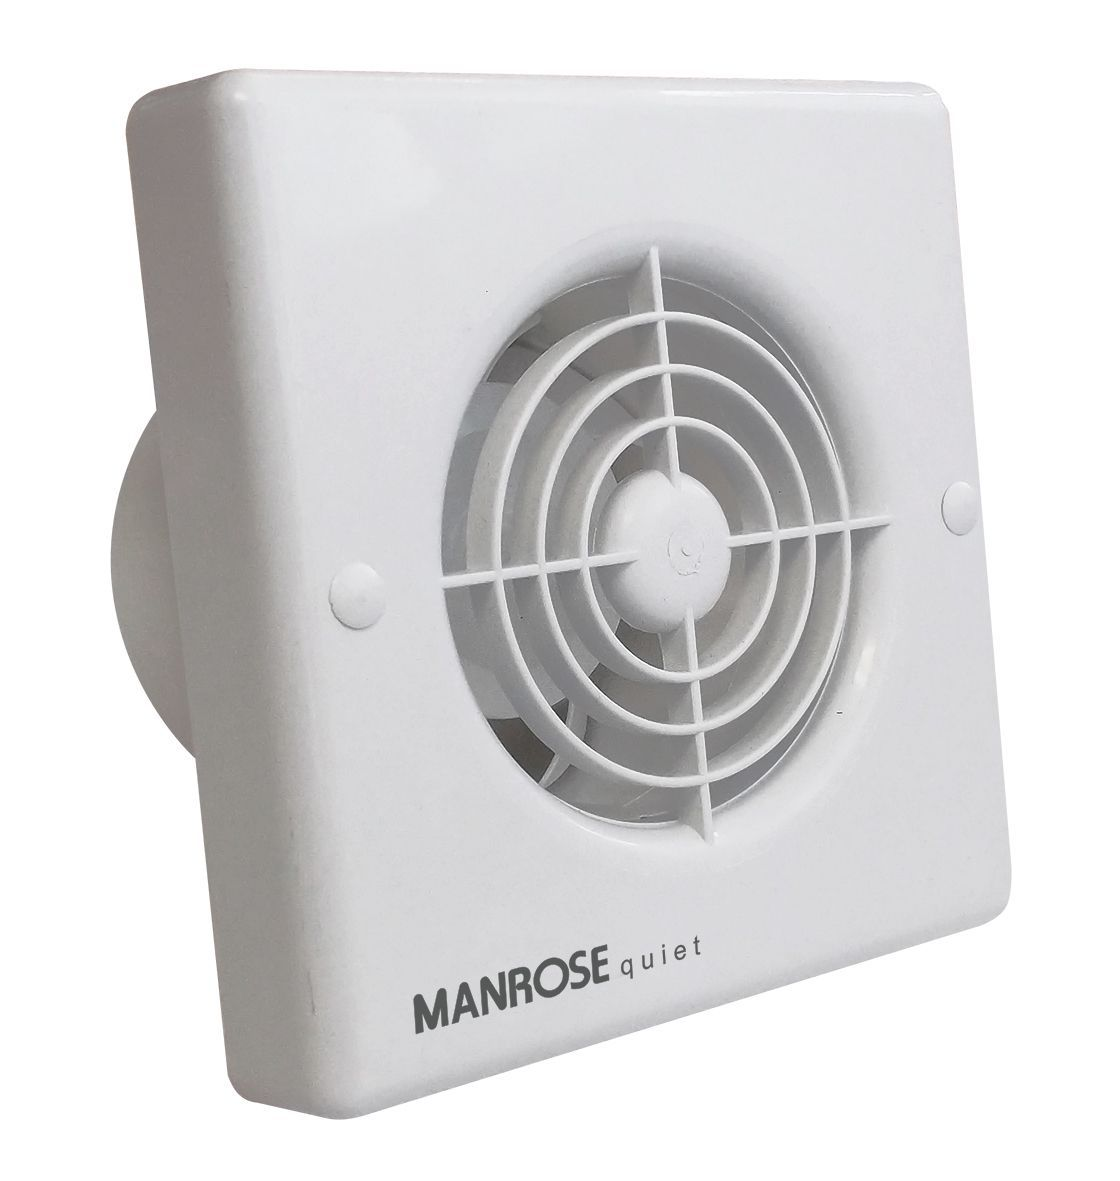 Manrose qf t bathroom extractor fan with timer d mm